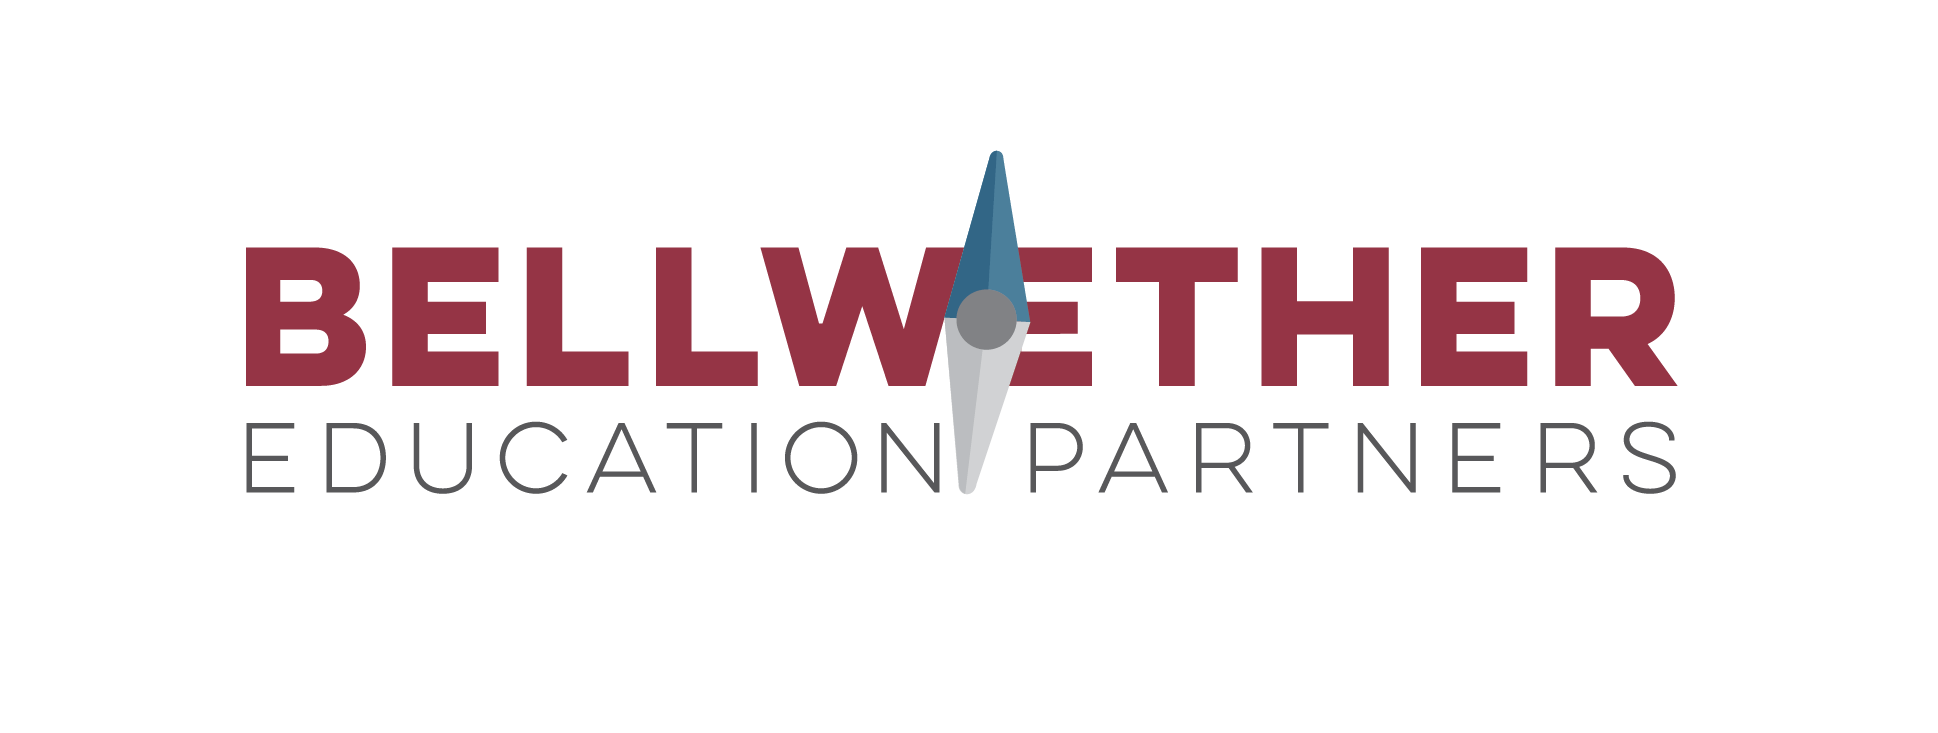 Bellwether-logo-full-color_Bellwether-Logo-Full-Color.png